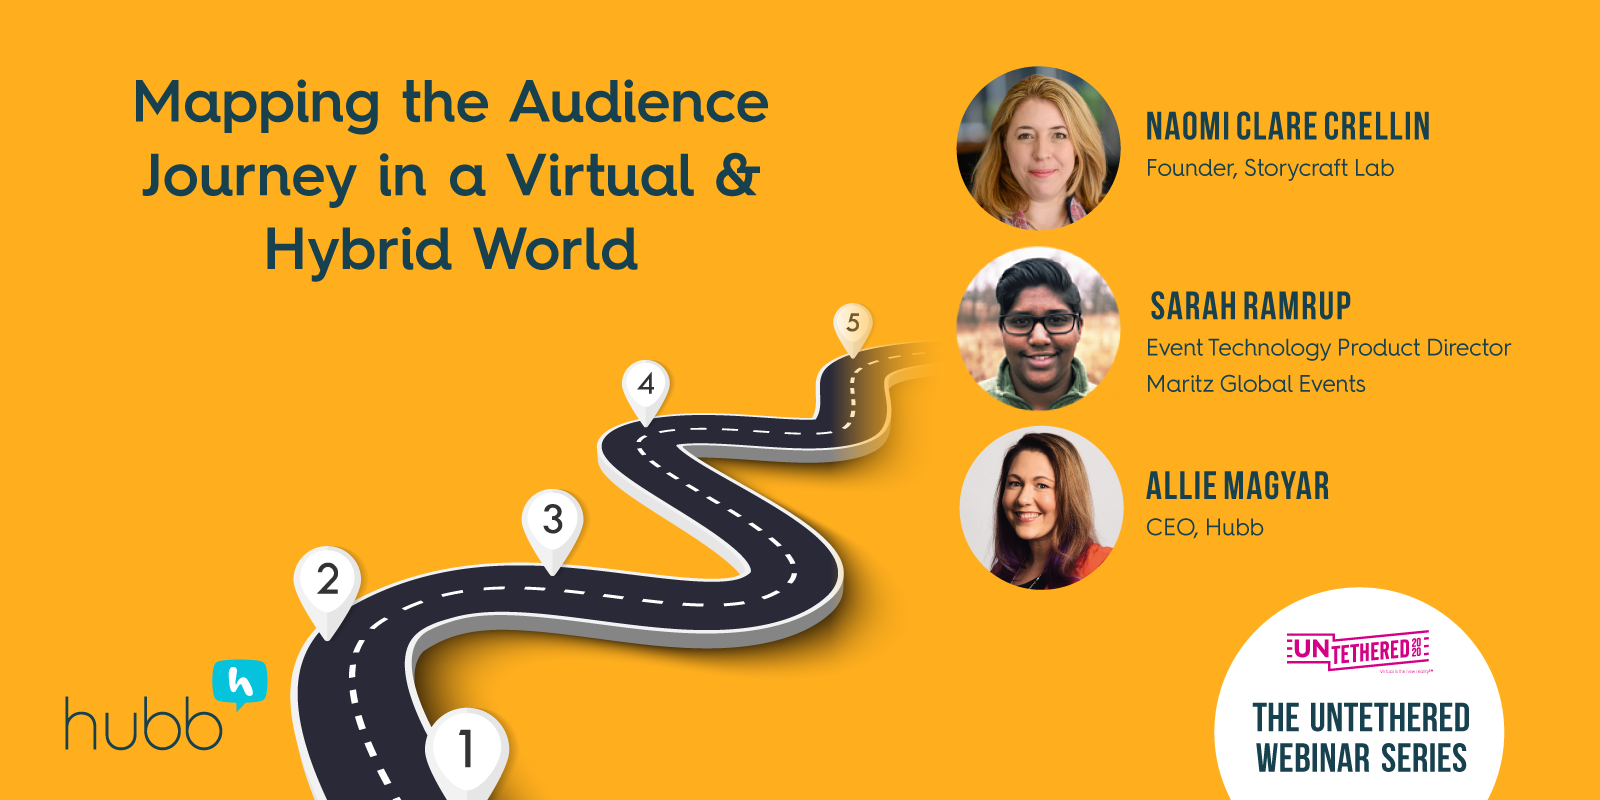 Mapping the Audience Journey in a Virtual & Hybrid World Webinar